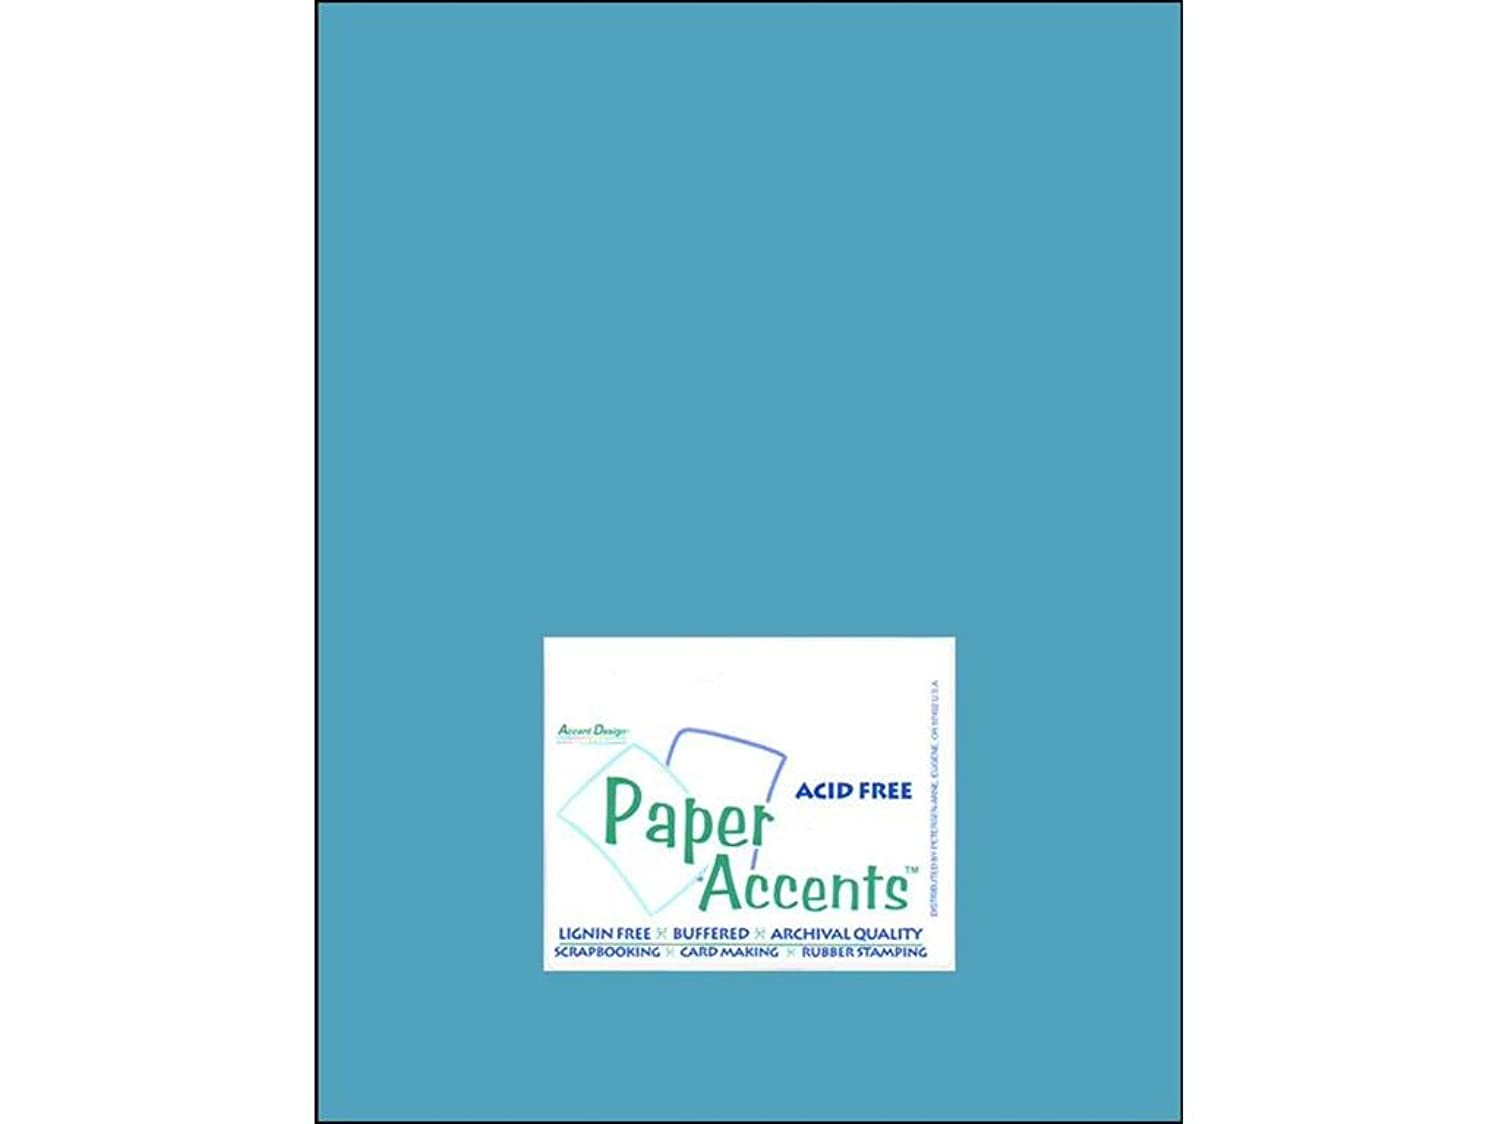 Accent Design Paper Accents Cdstk Smooth 8.5x11 80# Cyan